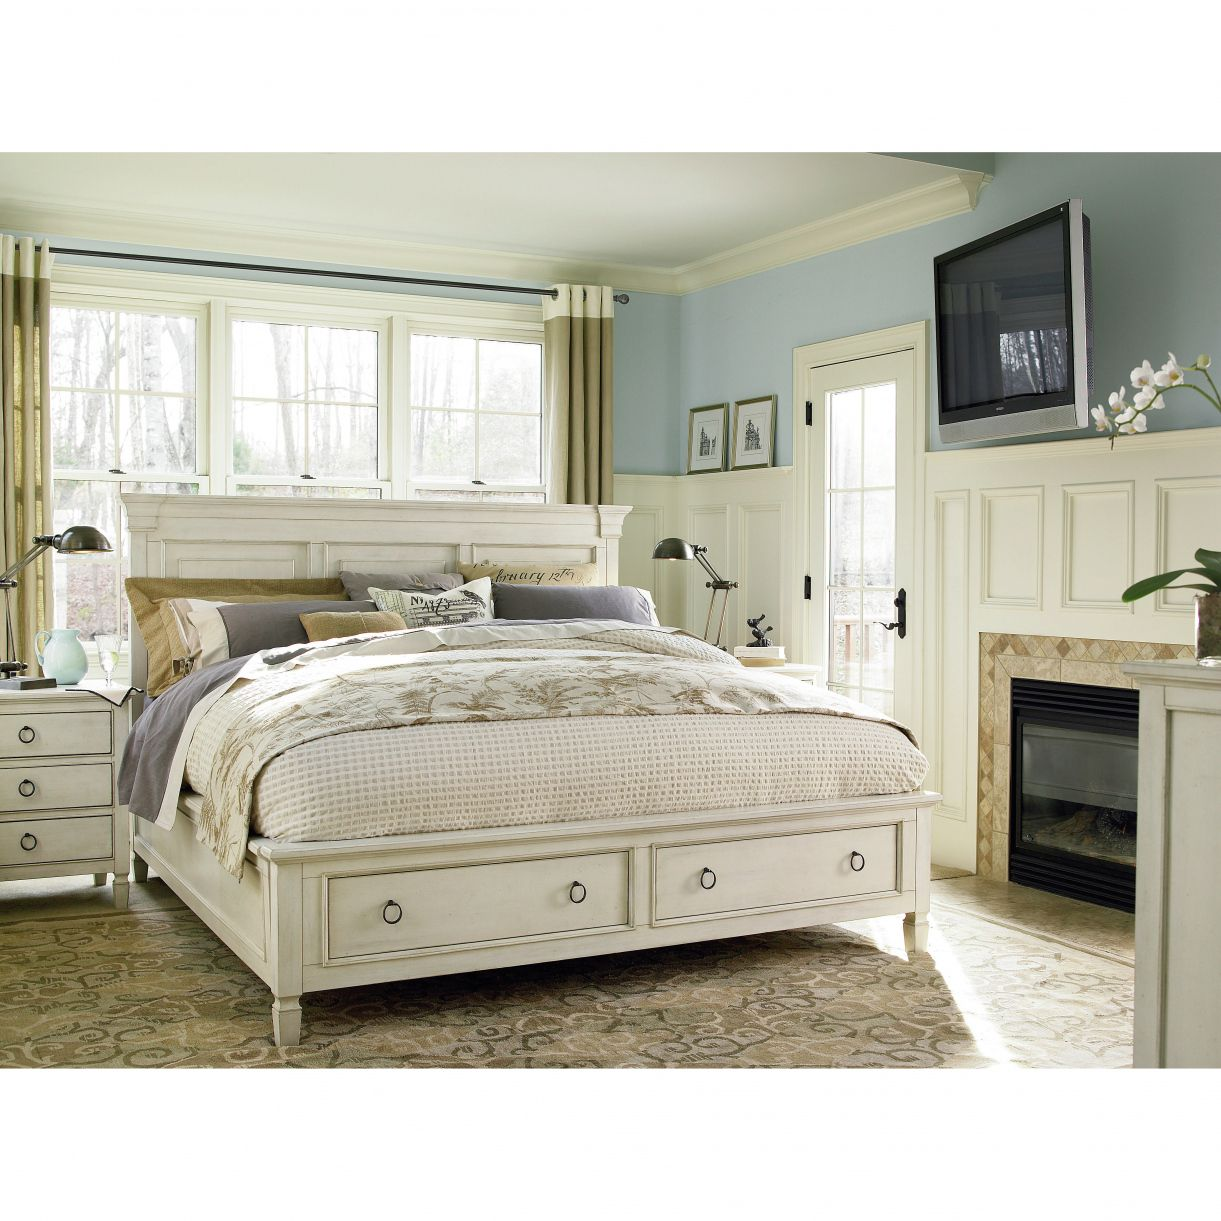 wayfair bedroom furniture interior design master bedroom check